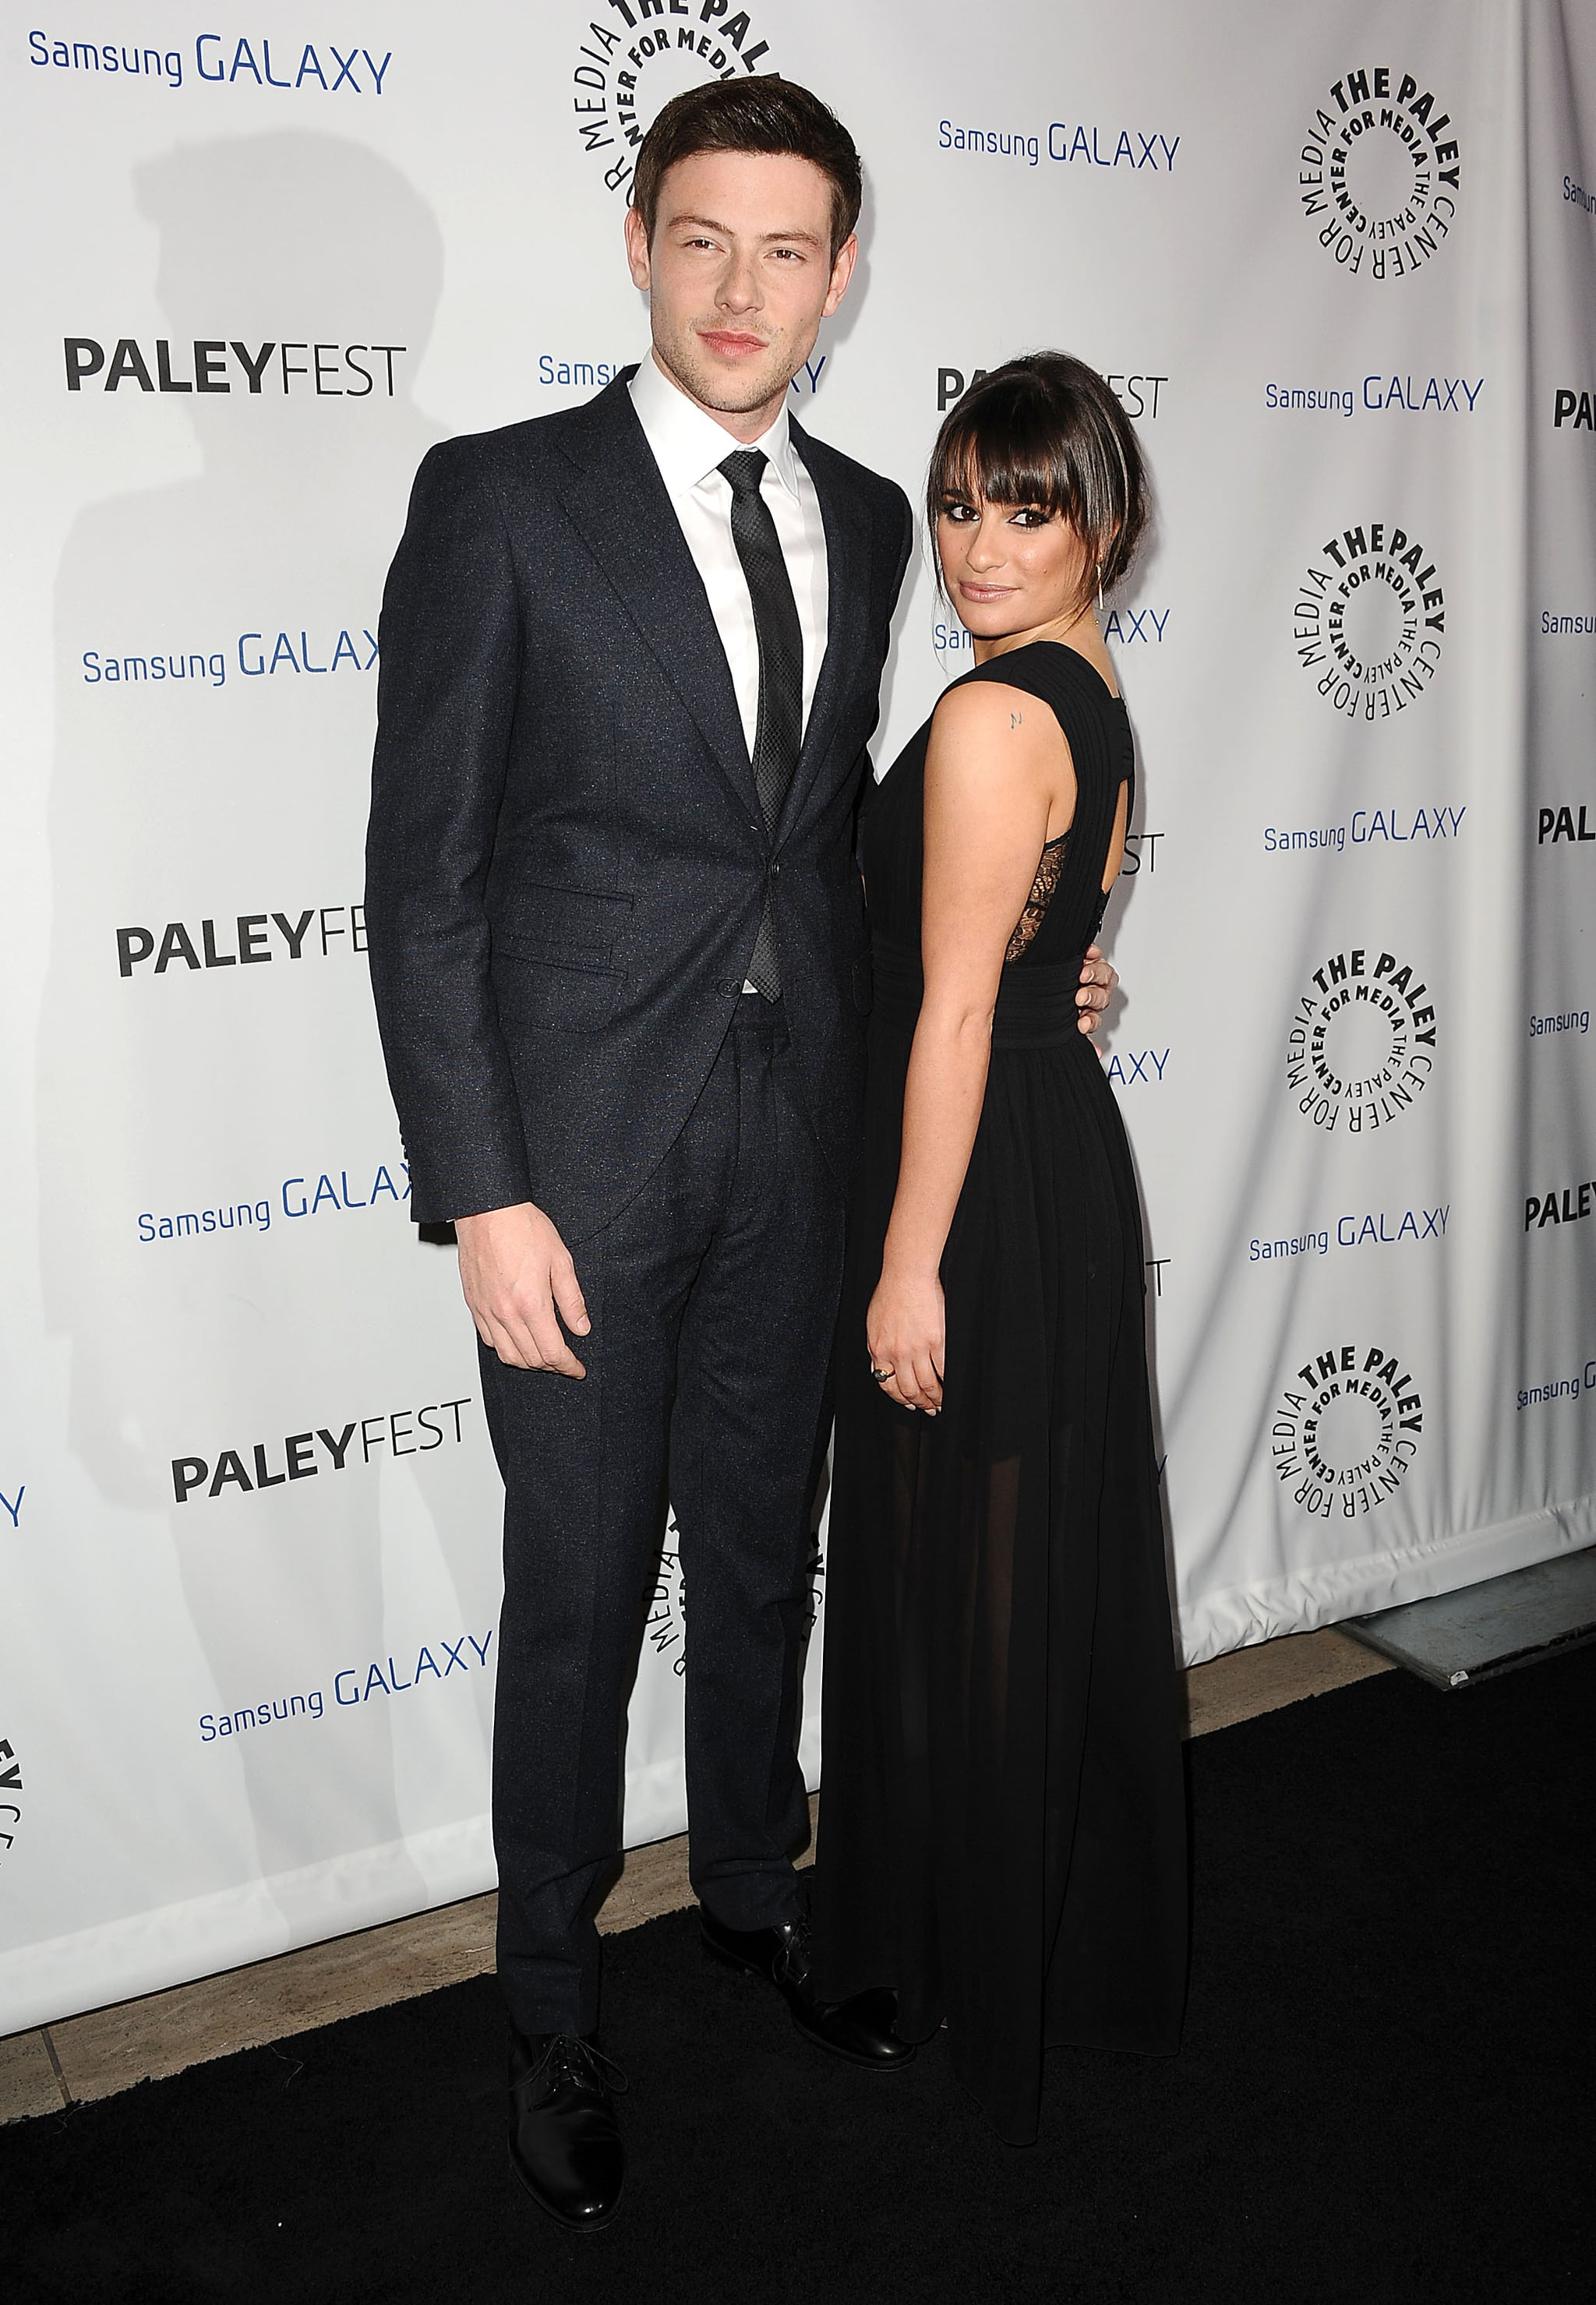 Lea Michele and Cory Monteith walked the red carpet together.